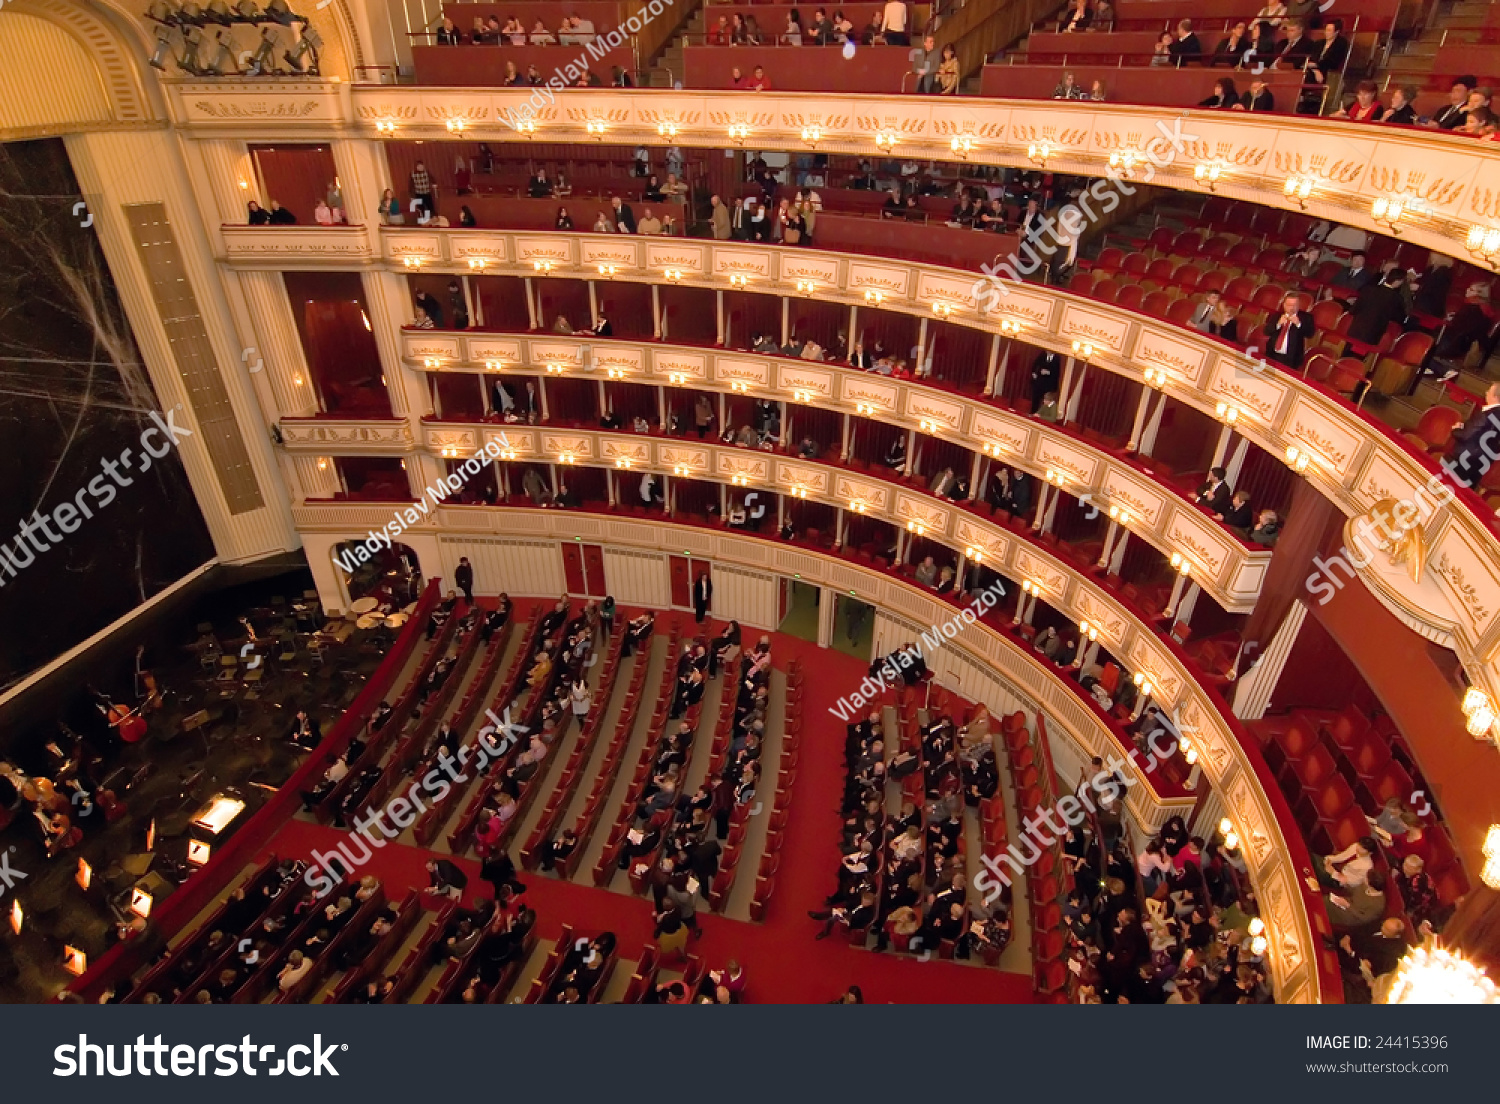 Vienna opera standing room tickets rick steves travel forum for Performance house